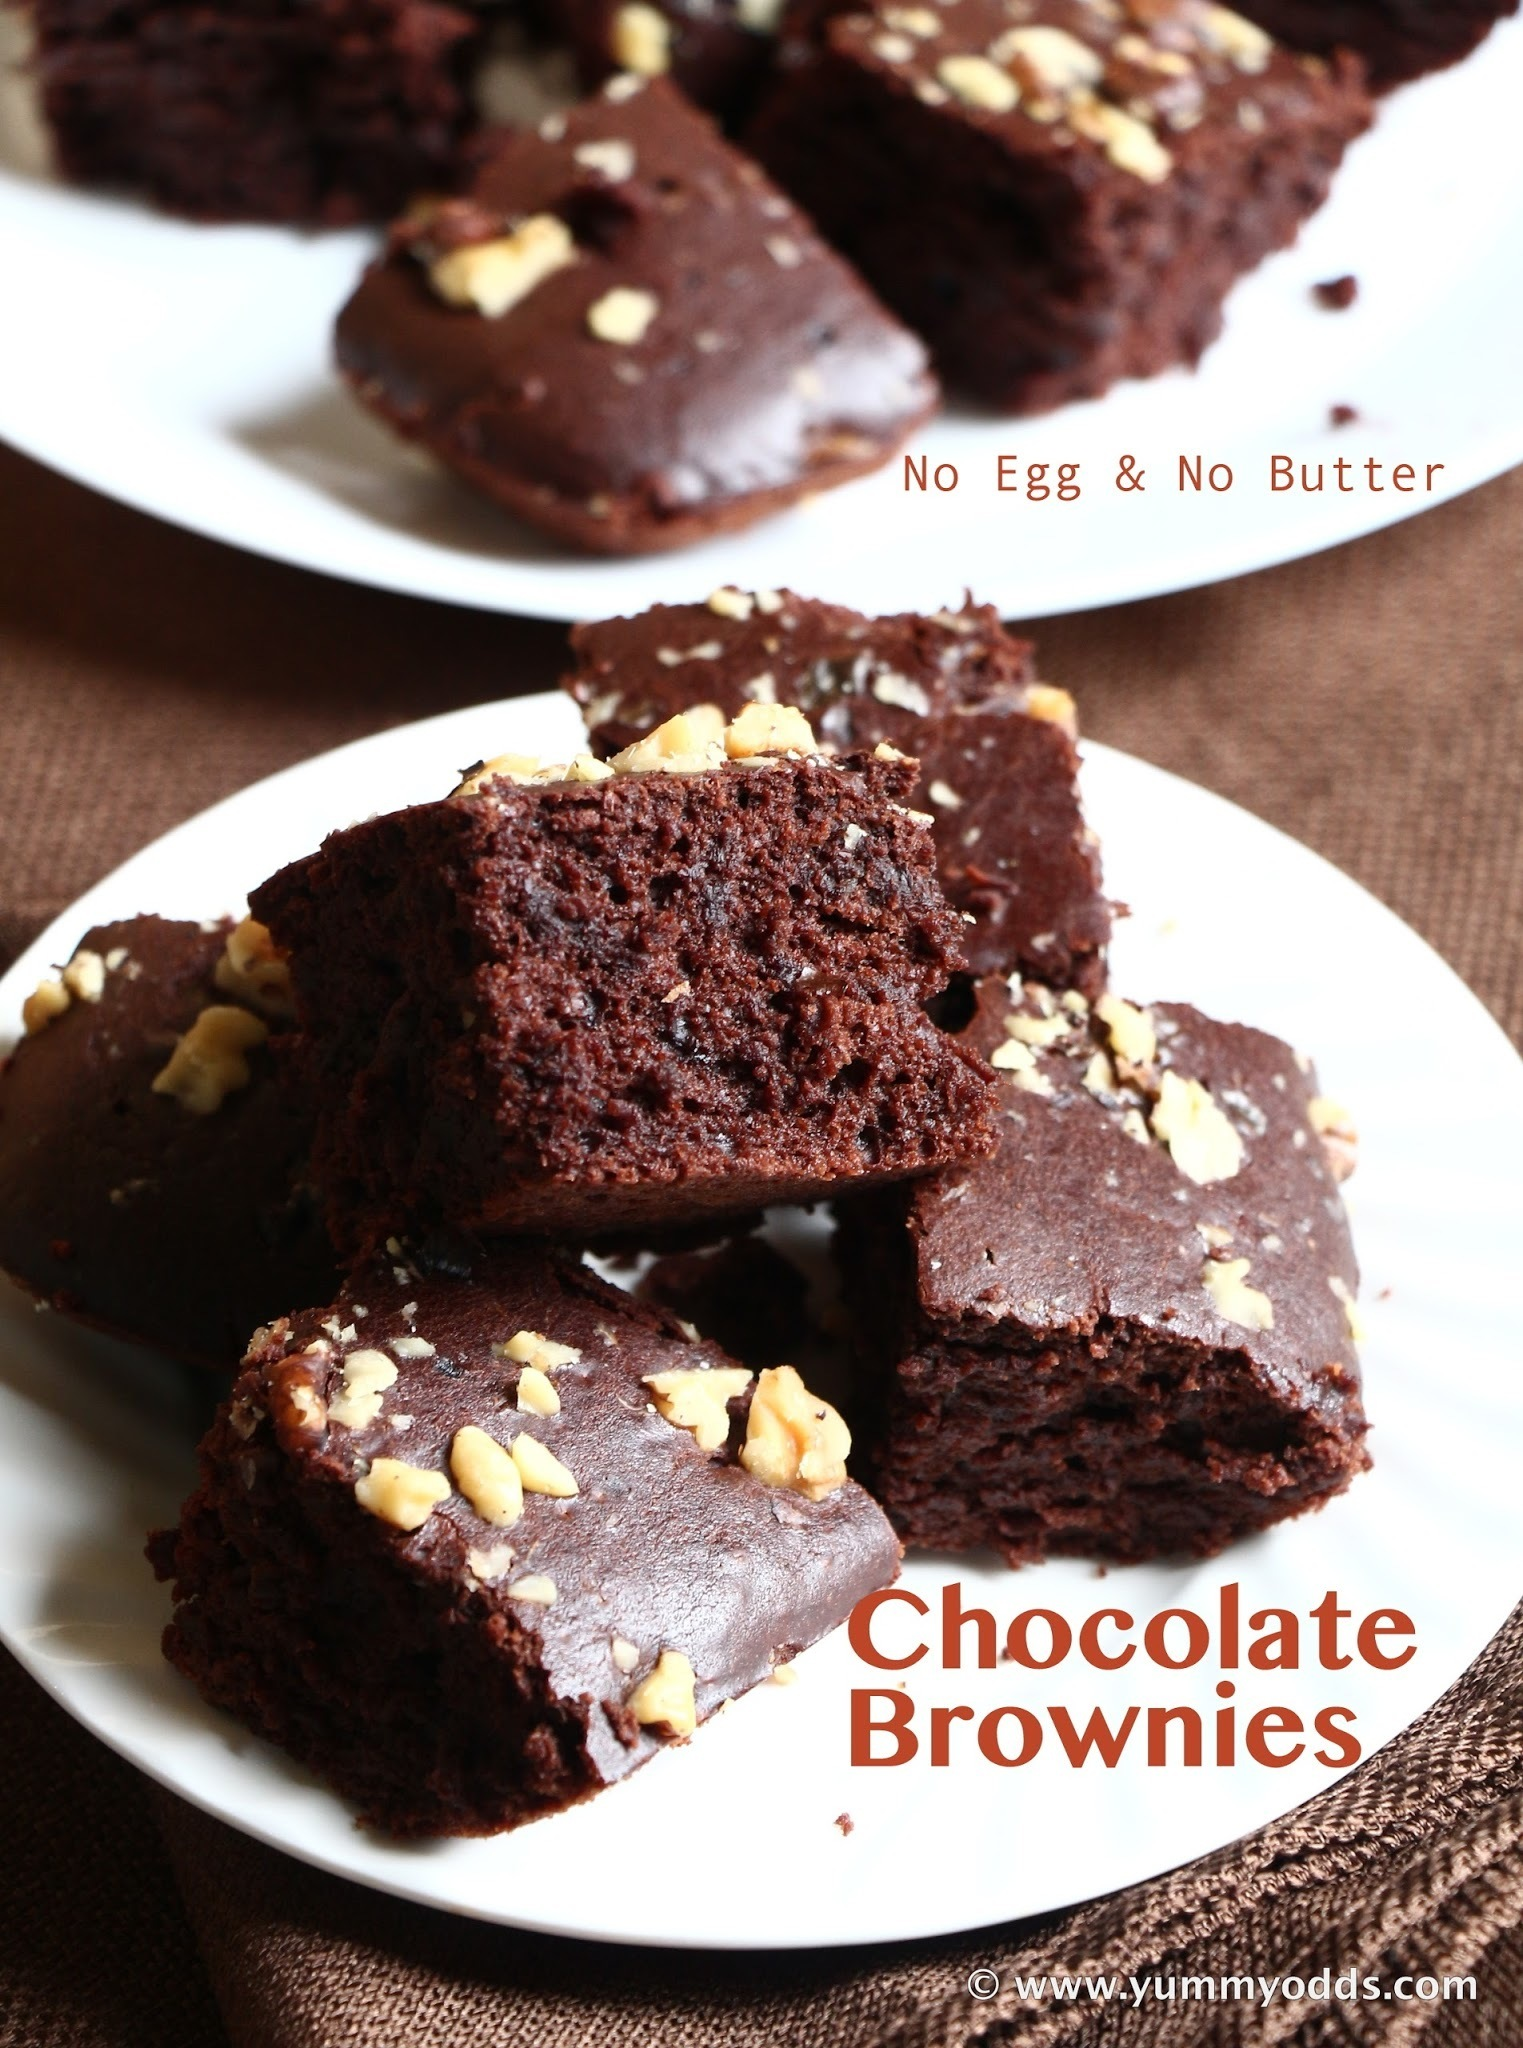 Eggless Chocolate Brownies ( No Egg & No Butter)